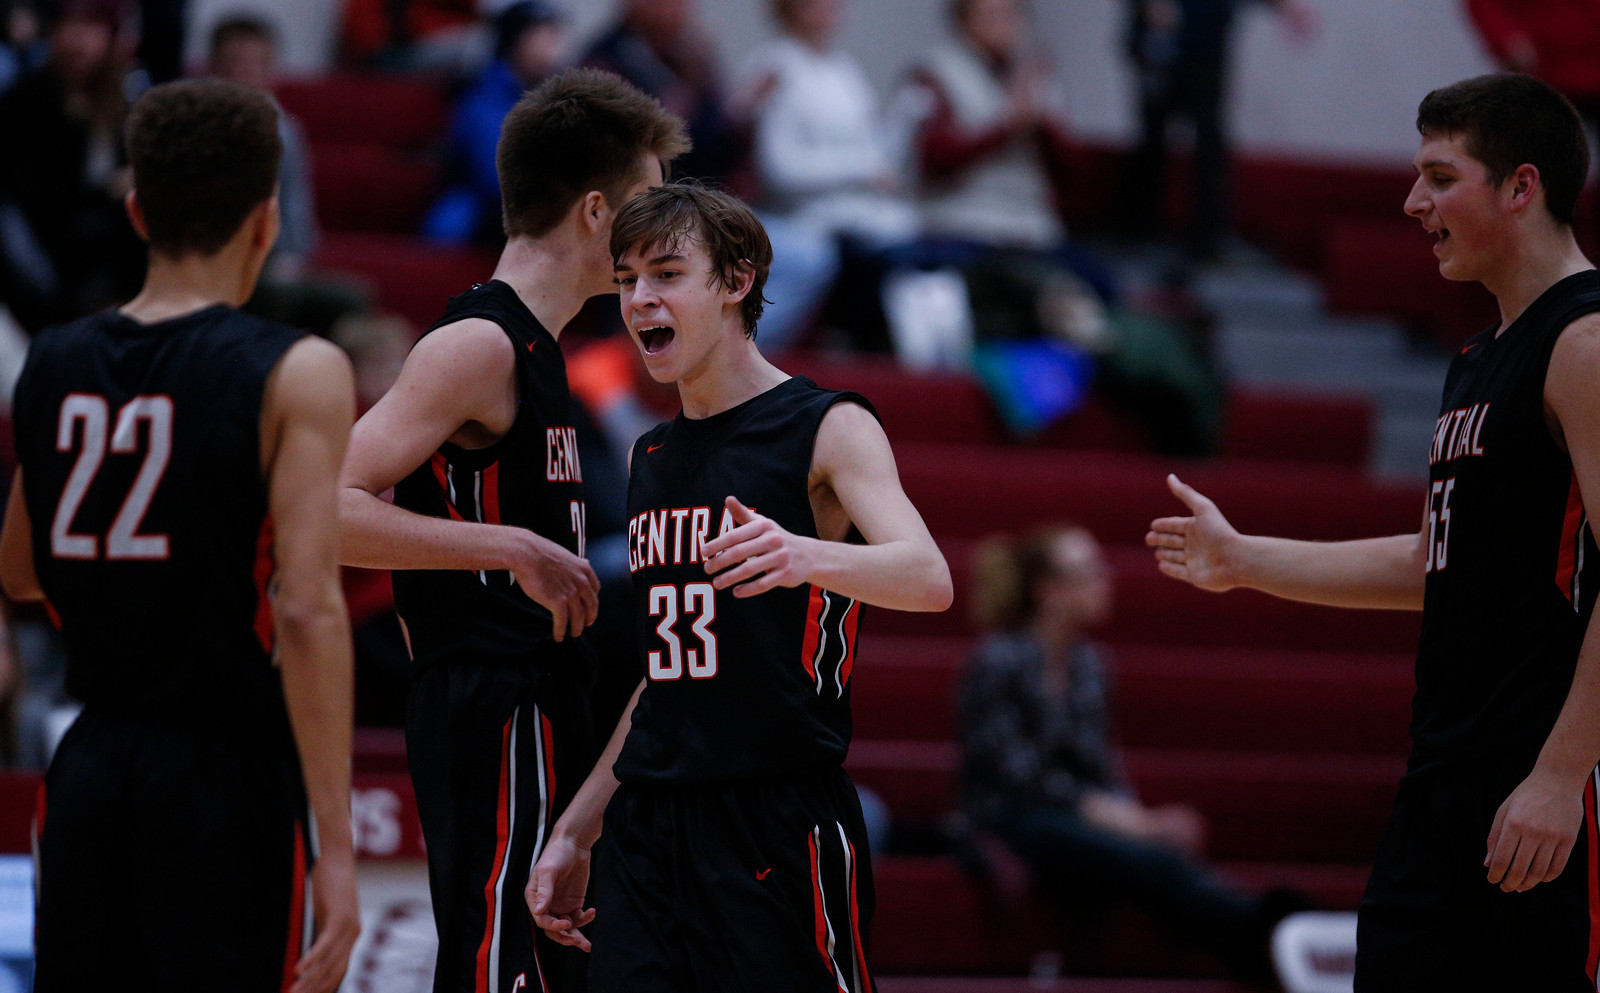 Christian Lerum (33) from Crystal Lake Central celebrates their championship win over Marengo in the E.C. Nichols Holiday Classic at Marengo High School on Friday, December 29, 2017 in Marengo, Illinois. The Tigers defeated the Indians 72-57. John Konstantaras photo for Shaw Media